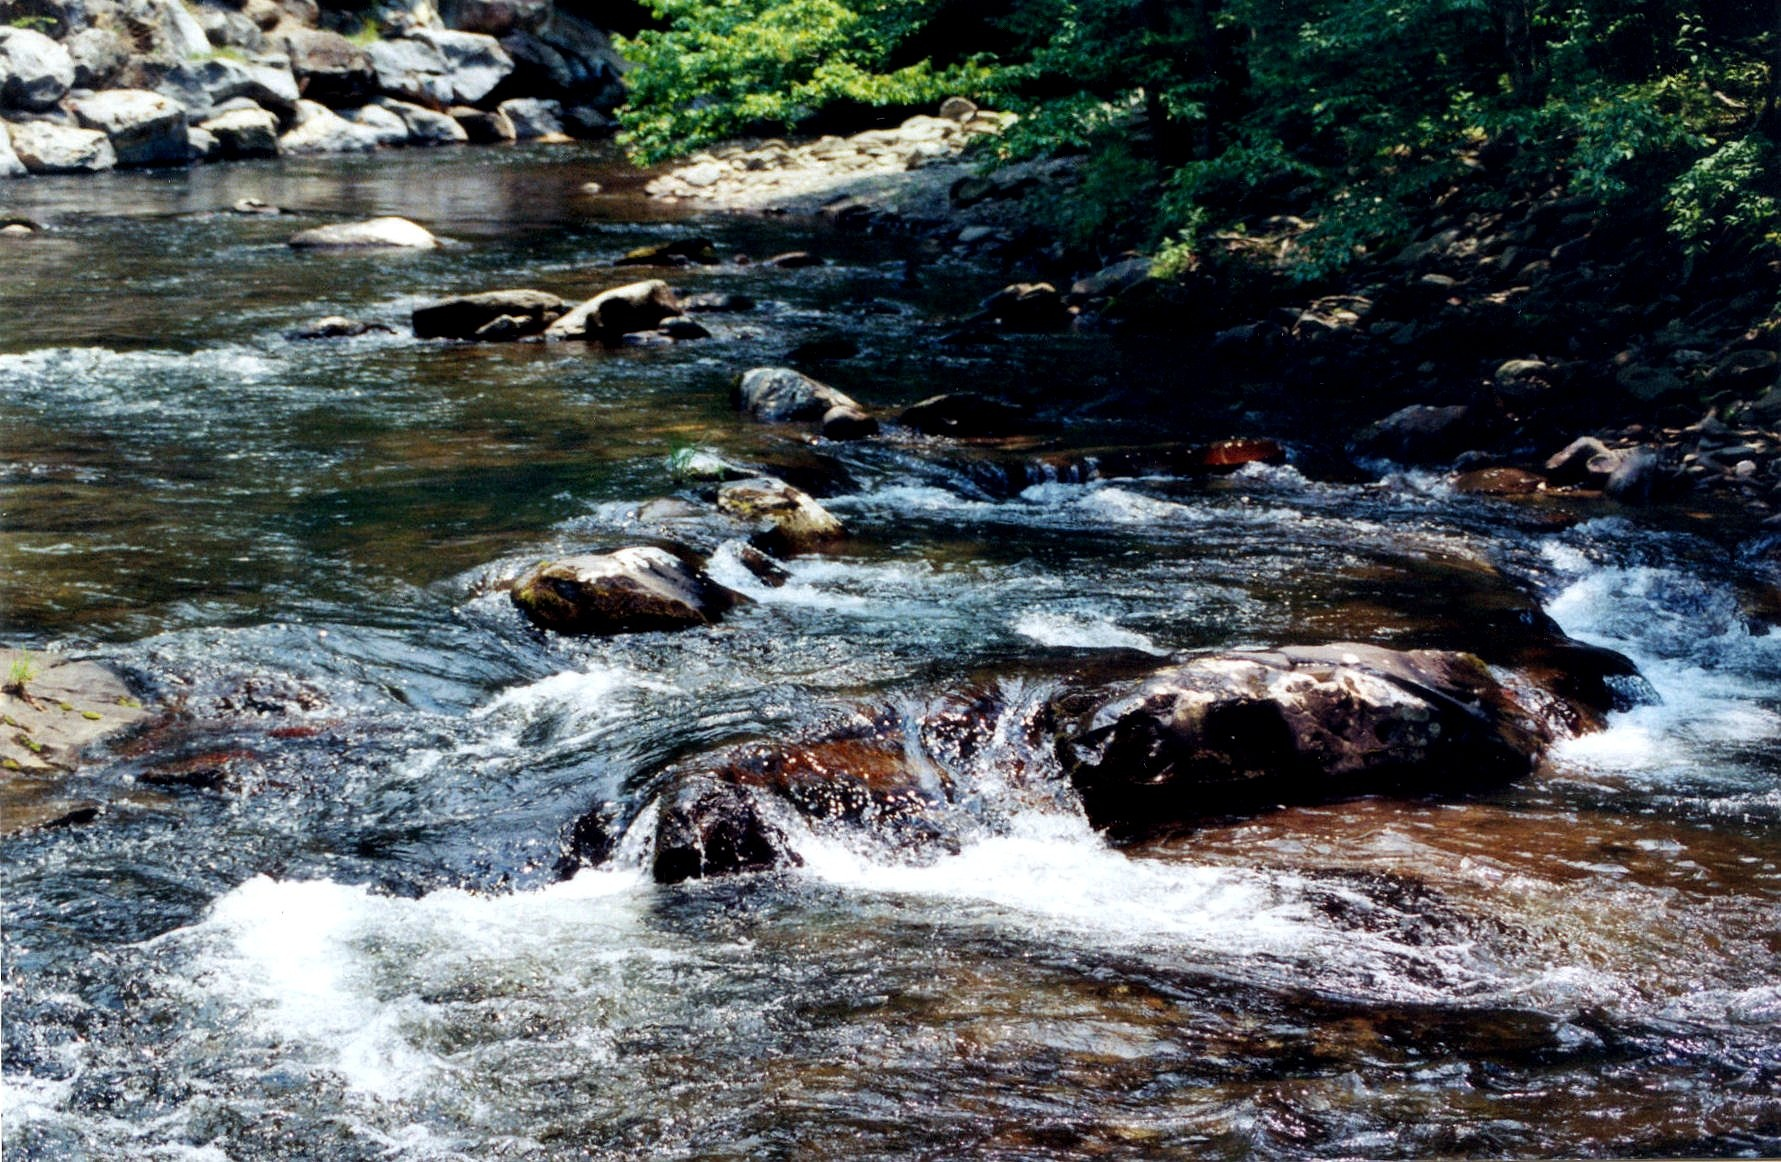 Flowing Water by Thomas Bouldin